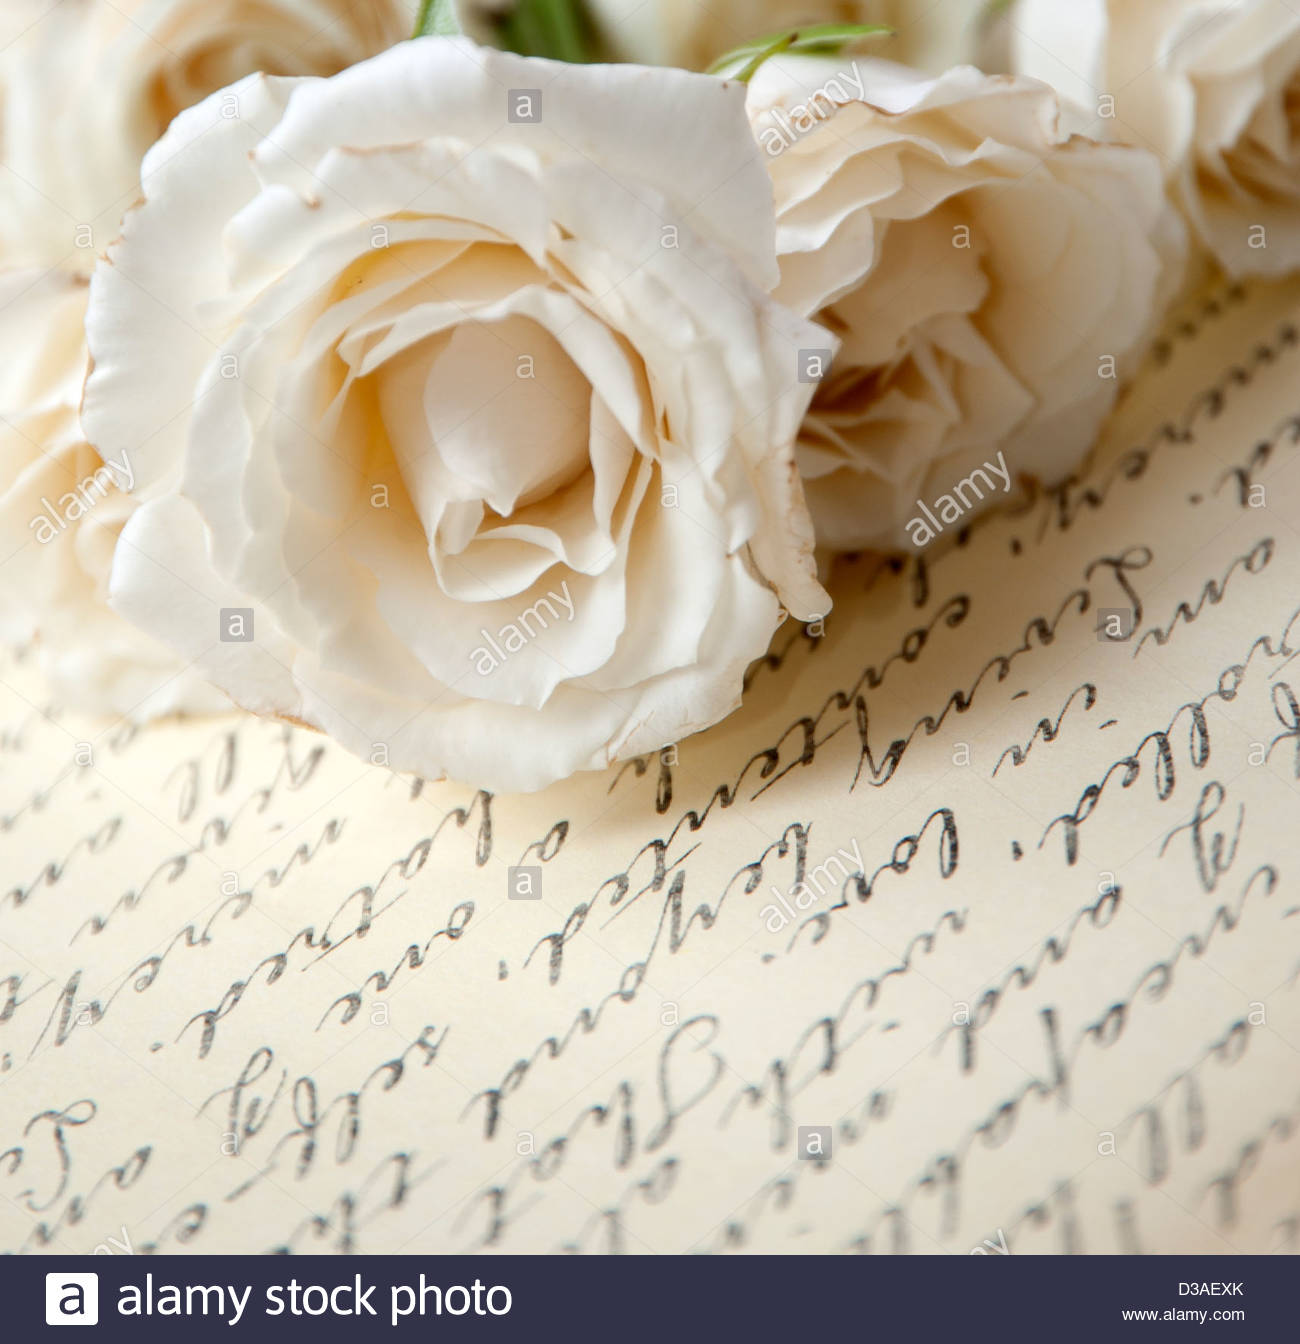 Love letter and roses - Stock Image